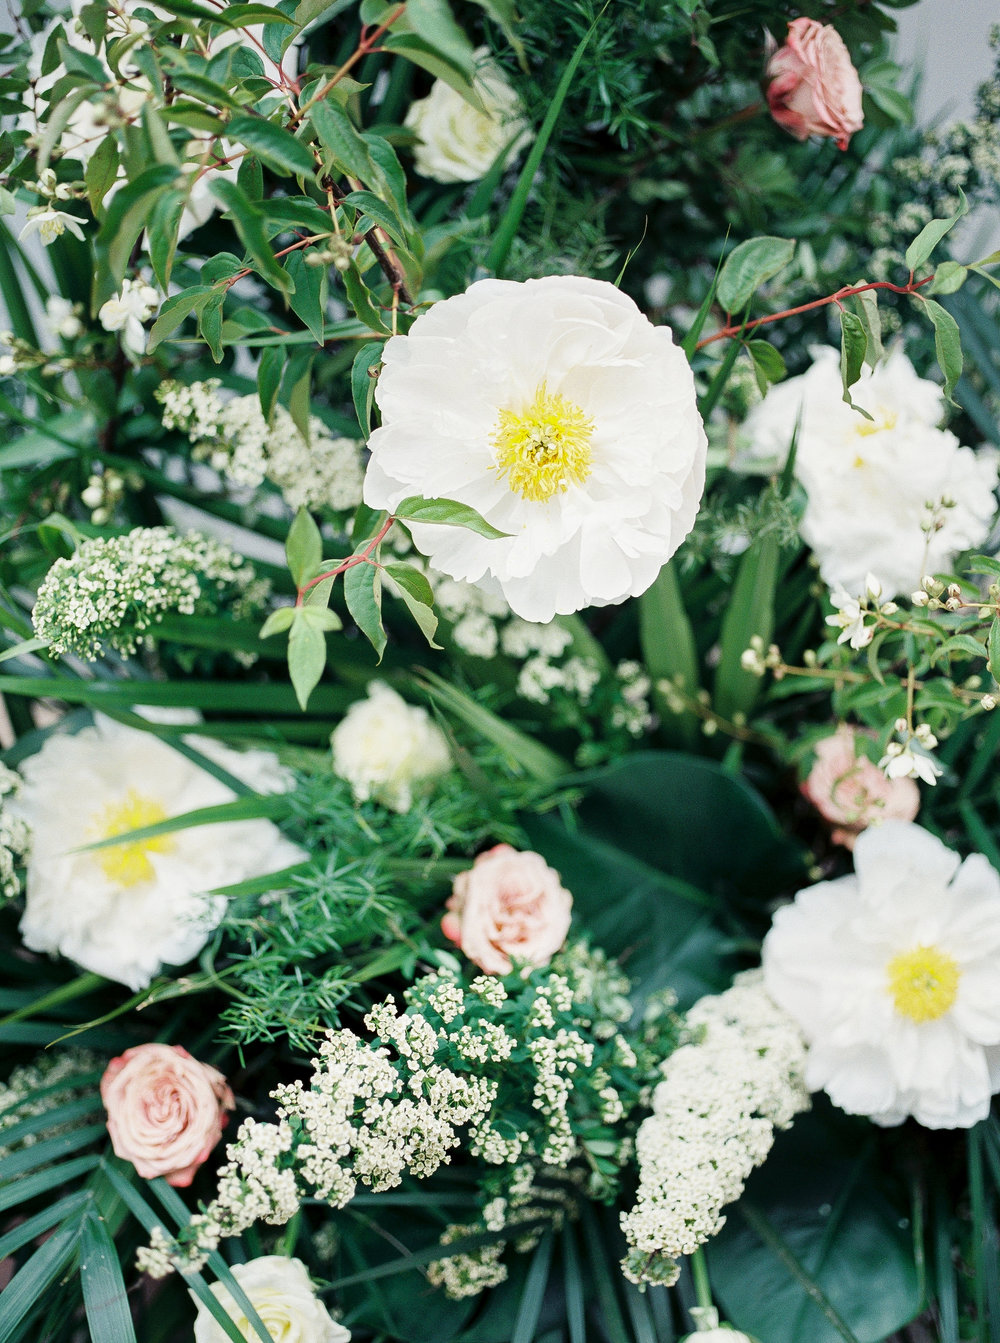 english garden inspired wedding flowers with white peonies and roses.jpg